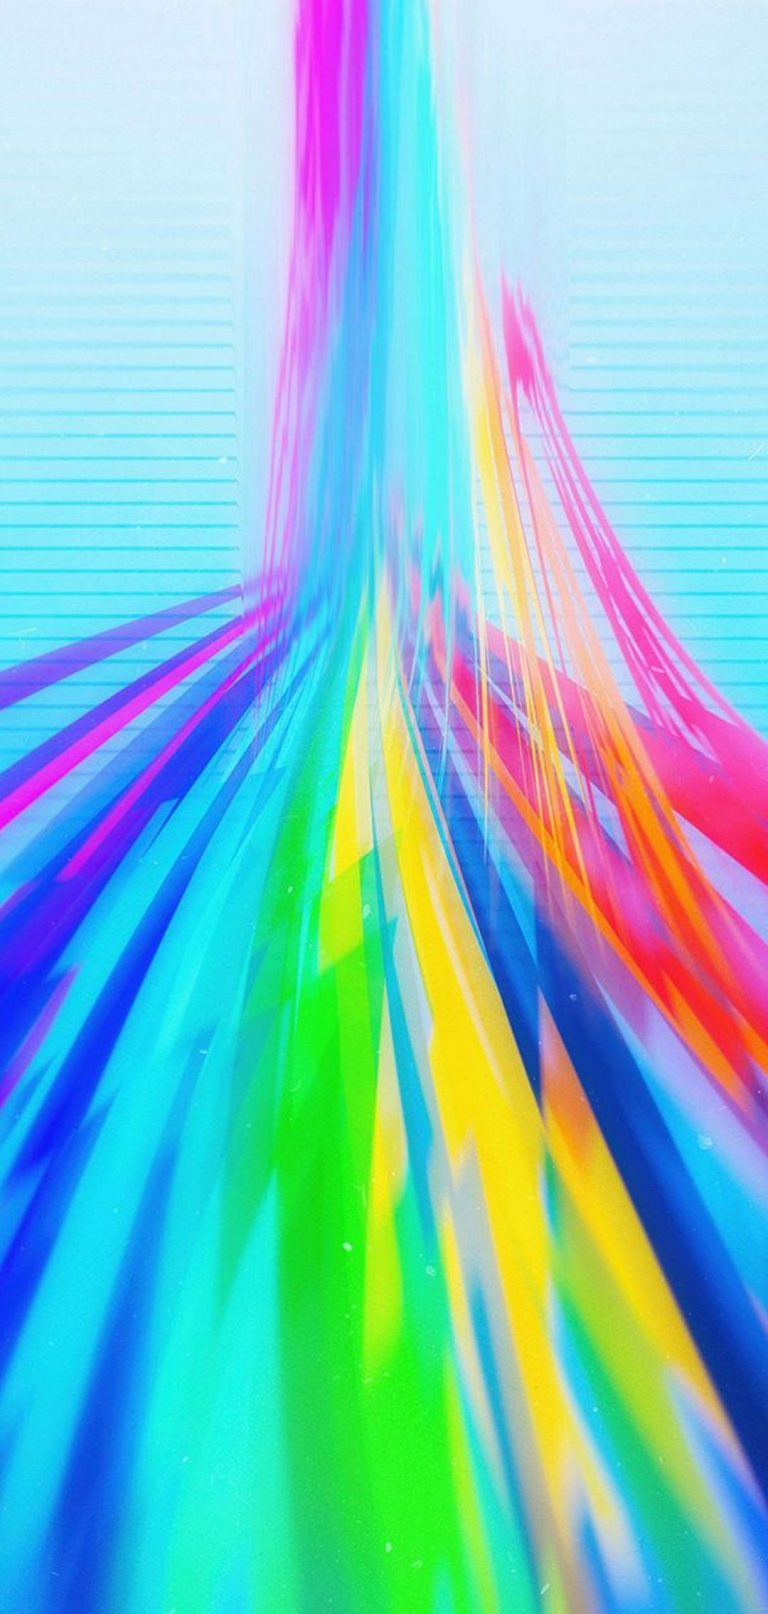 Girly Colored Lines 1080x2270 768x1614